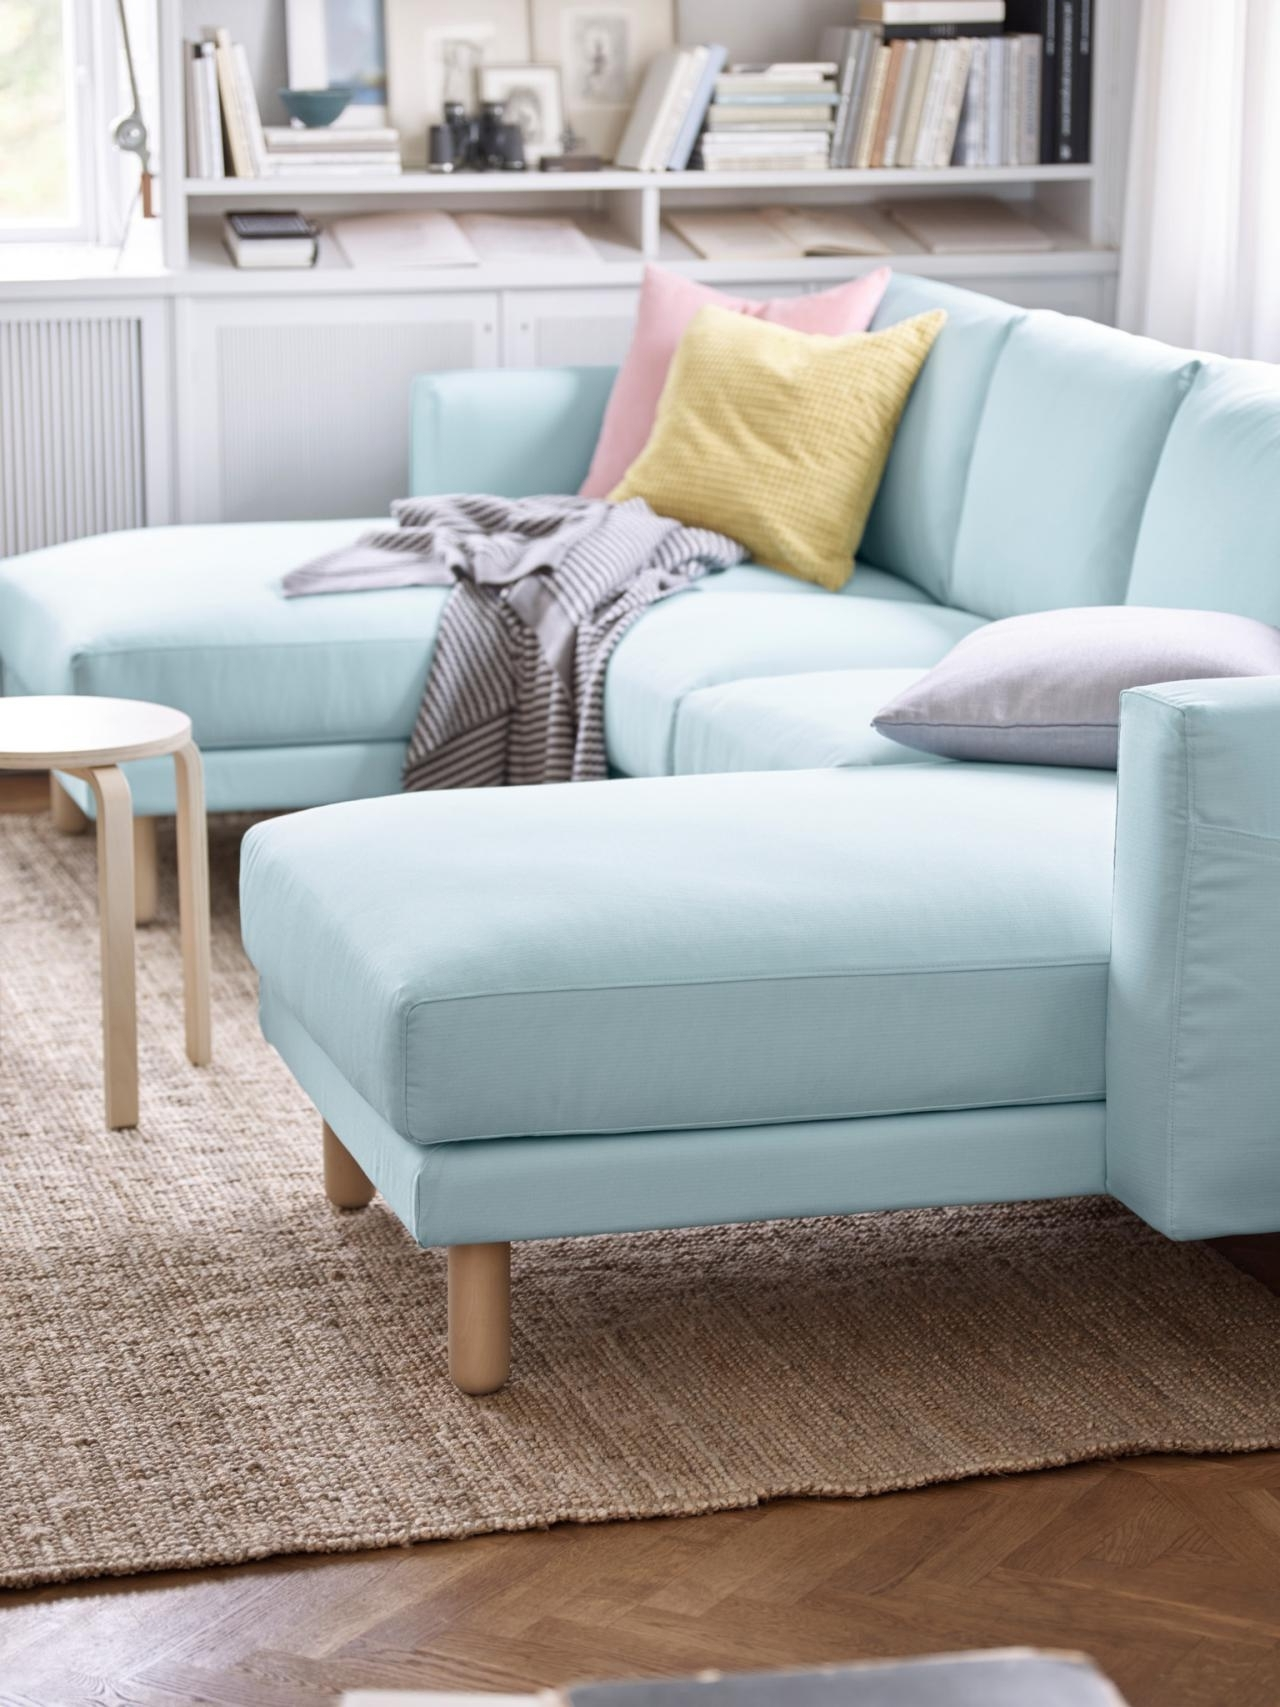 Widely Used Sectional Sofas For Small Rooms With Furniture Bedroom Narrow Sofa Compact Small Apartment Size (View 20 of 20)